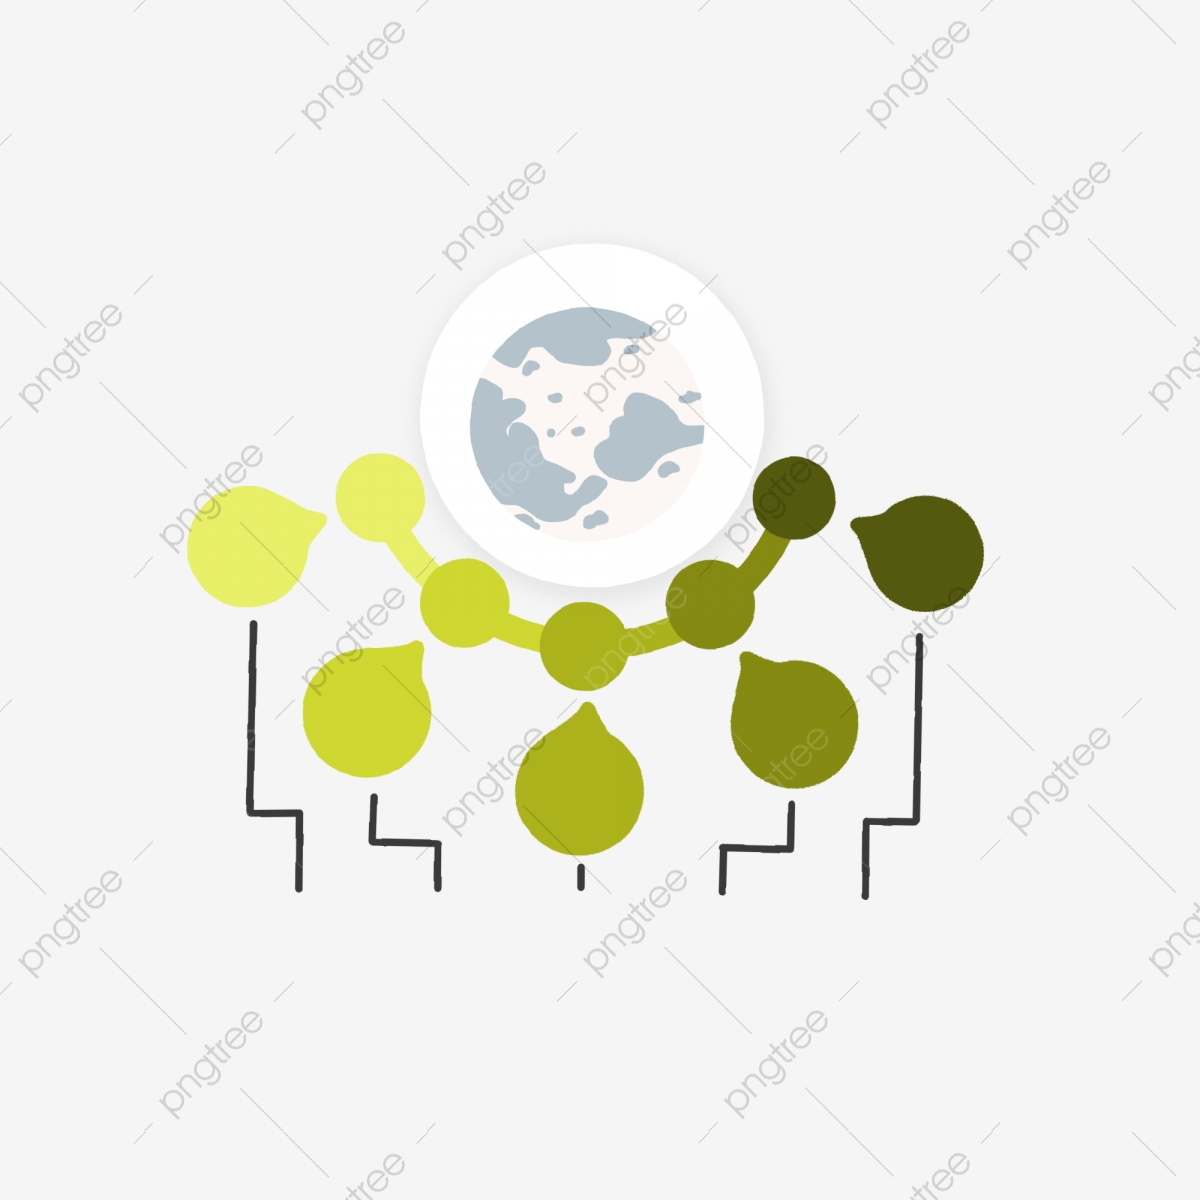 Couleur Chaude Globe Classification Separation Simple Dessin